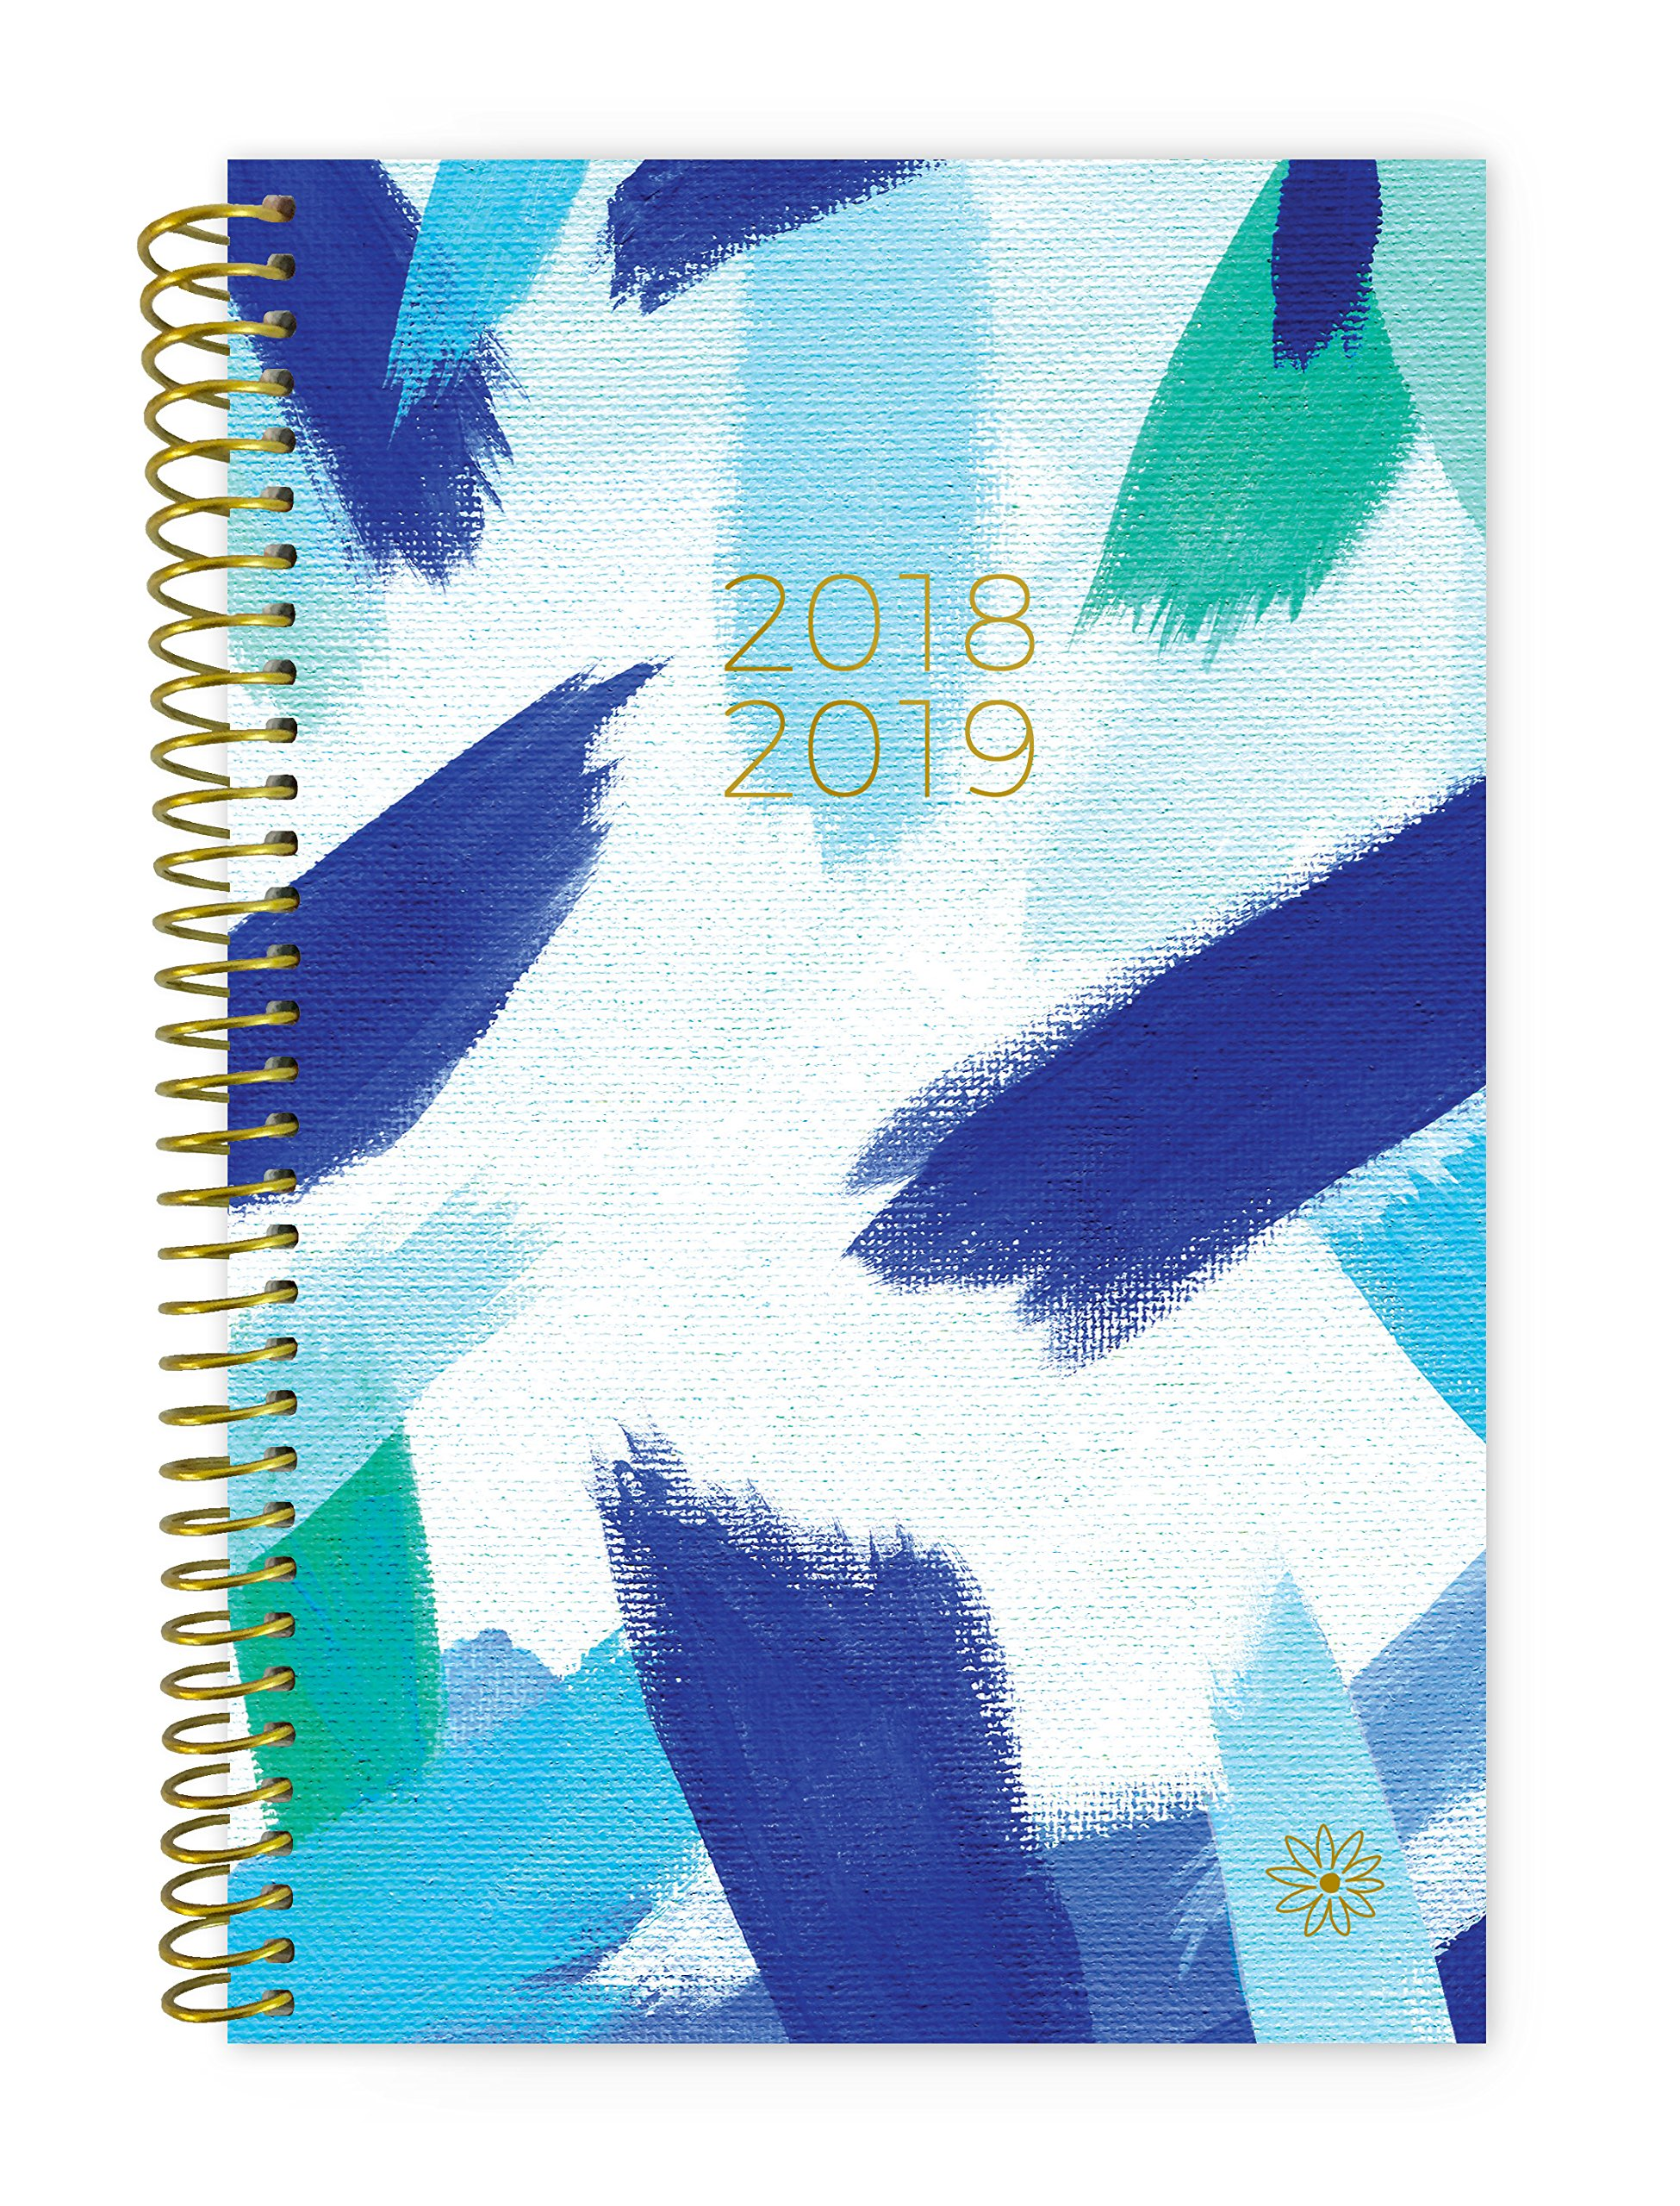 bloom daily planners 2018-2019 Academic Year Day Planner - Monthly and Weekly Calendar Book - Inspirational Dated Agenda Organizer - (August 2018 - July 2019) - 6'' x 8.25'' - Blue Strokes